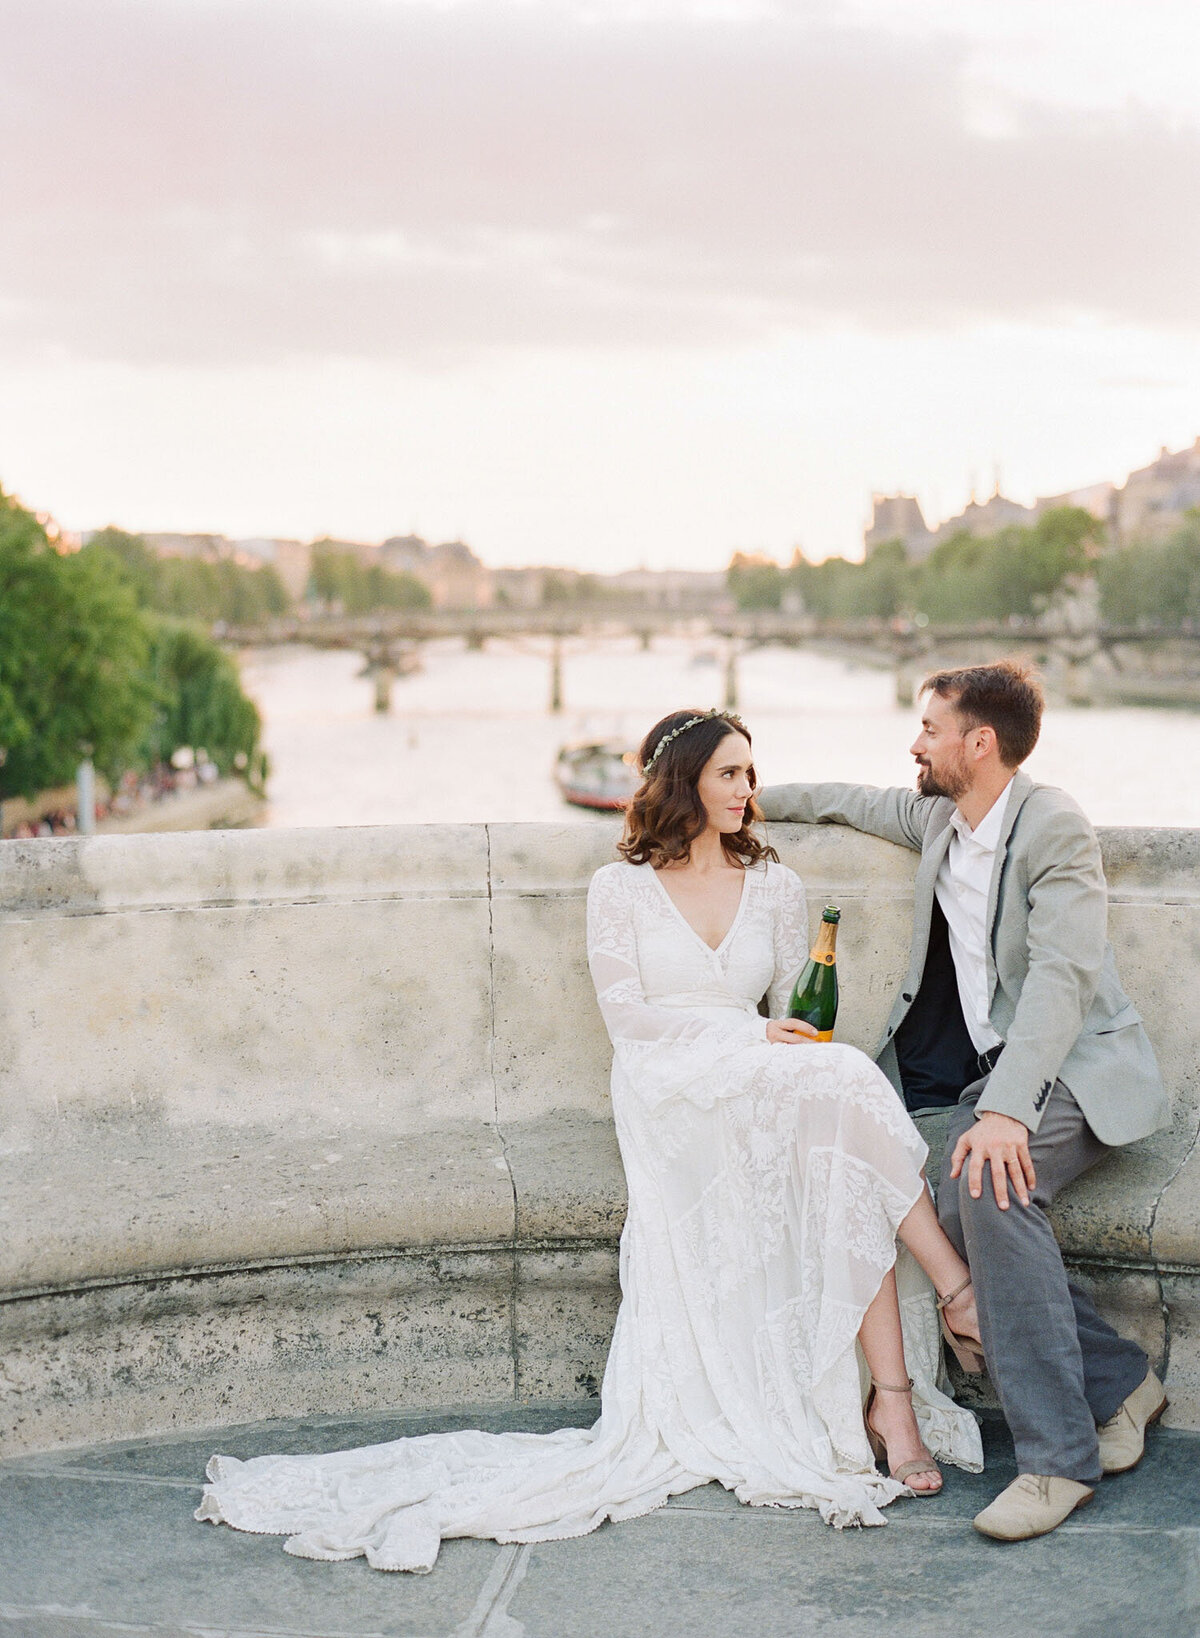 Molly-Carr-Photography-Paris-Wedding-Photographer-137